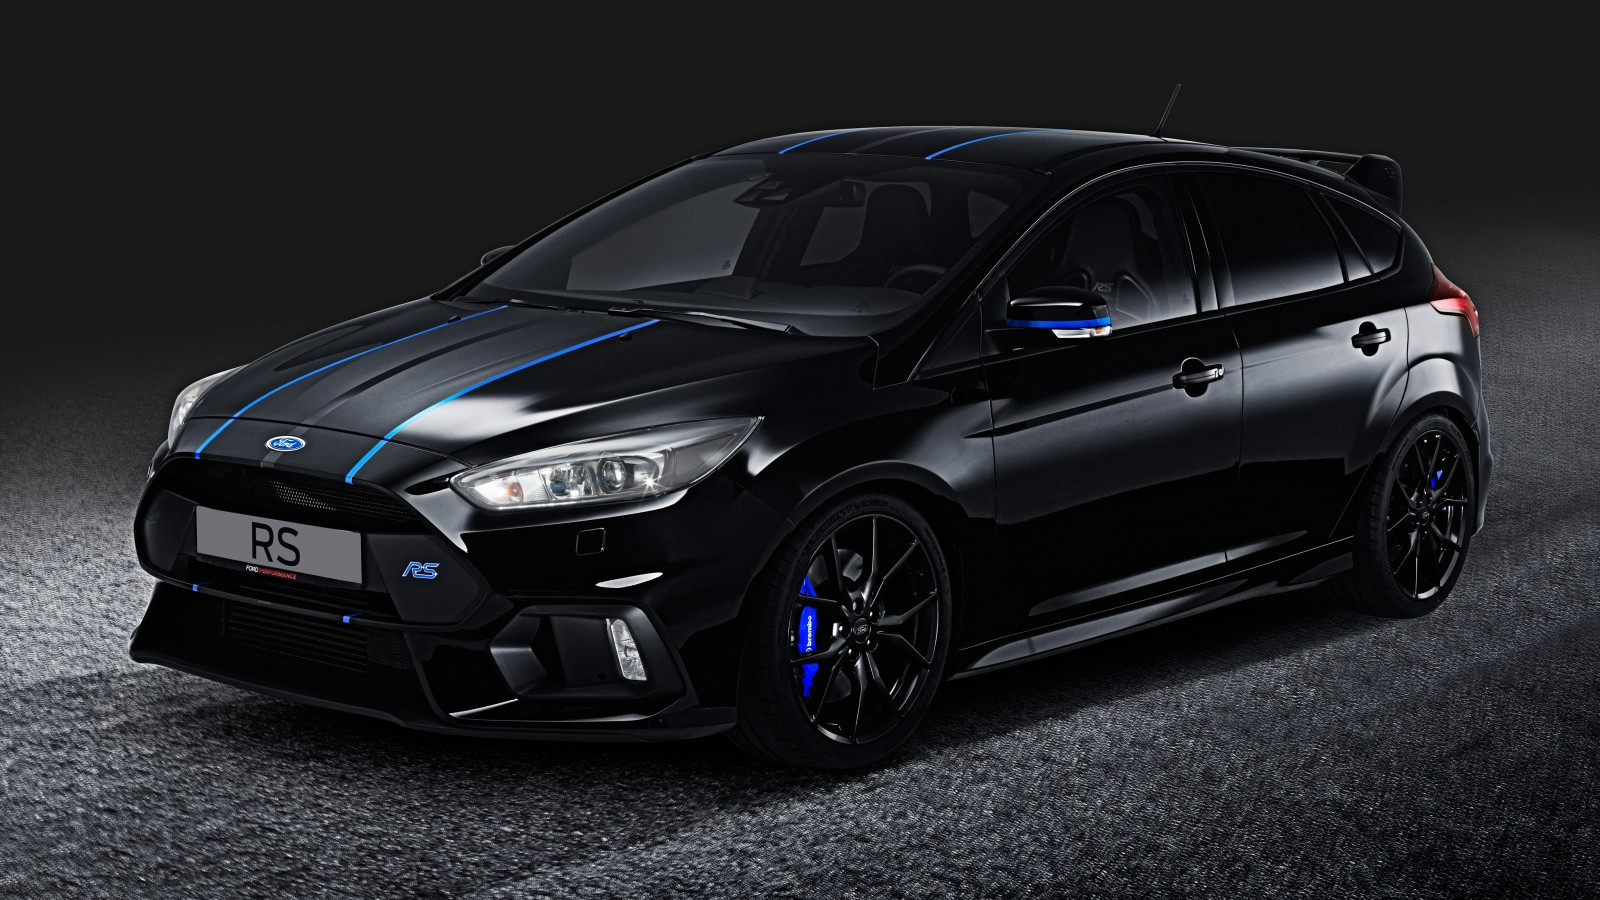 Hd Car Wallpapers 2017 Ford Focus Rs Performance Parts 4k Wallpaper Hd Car